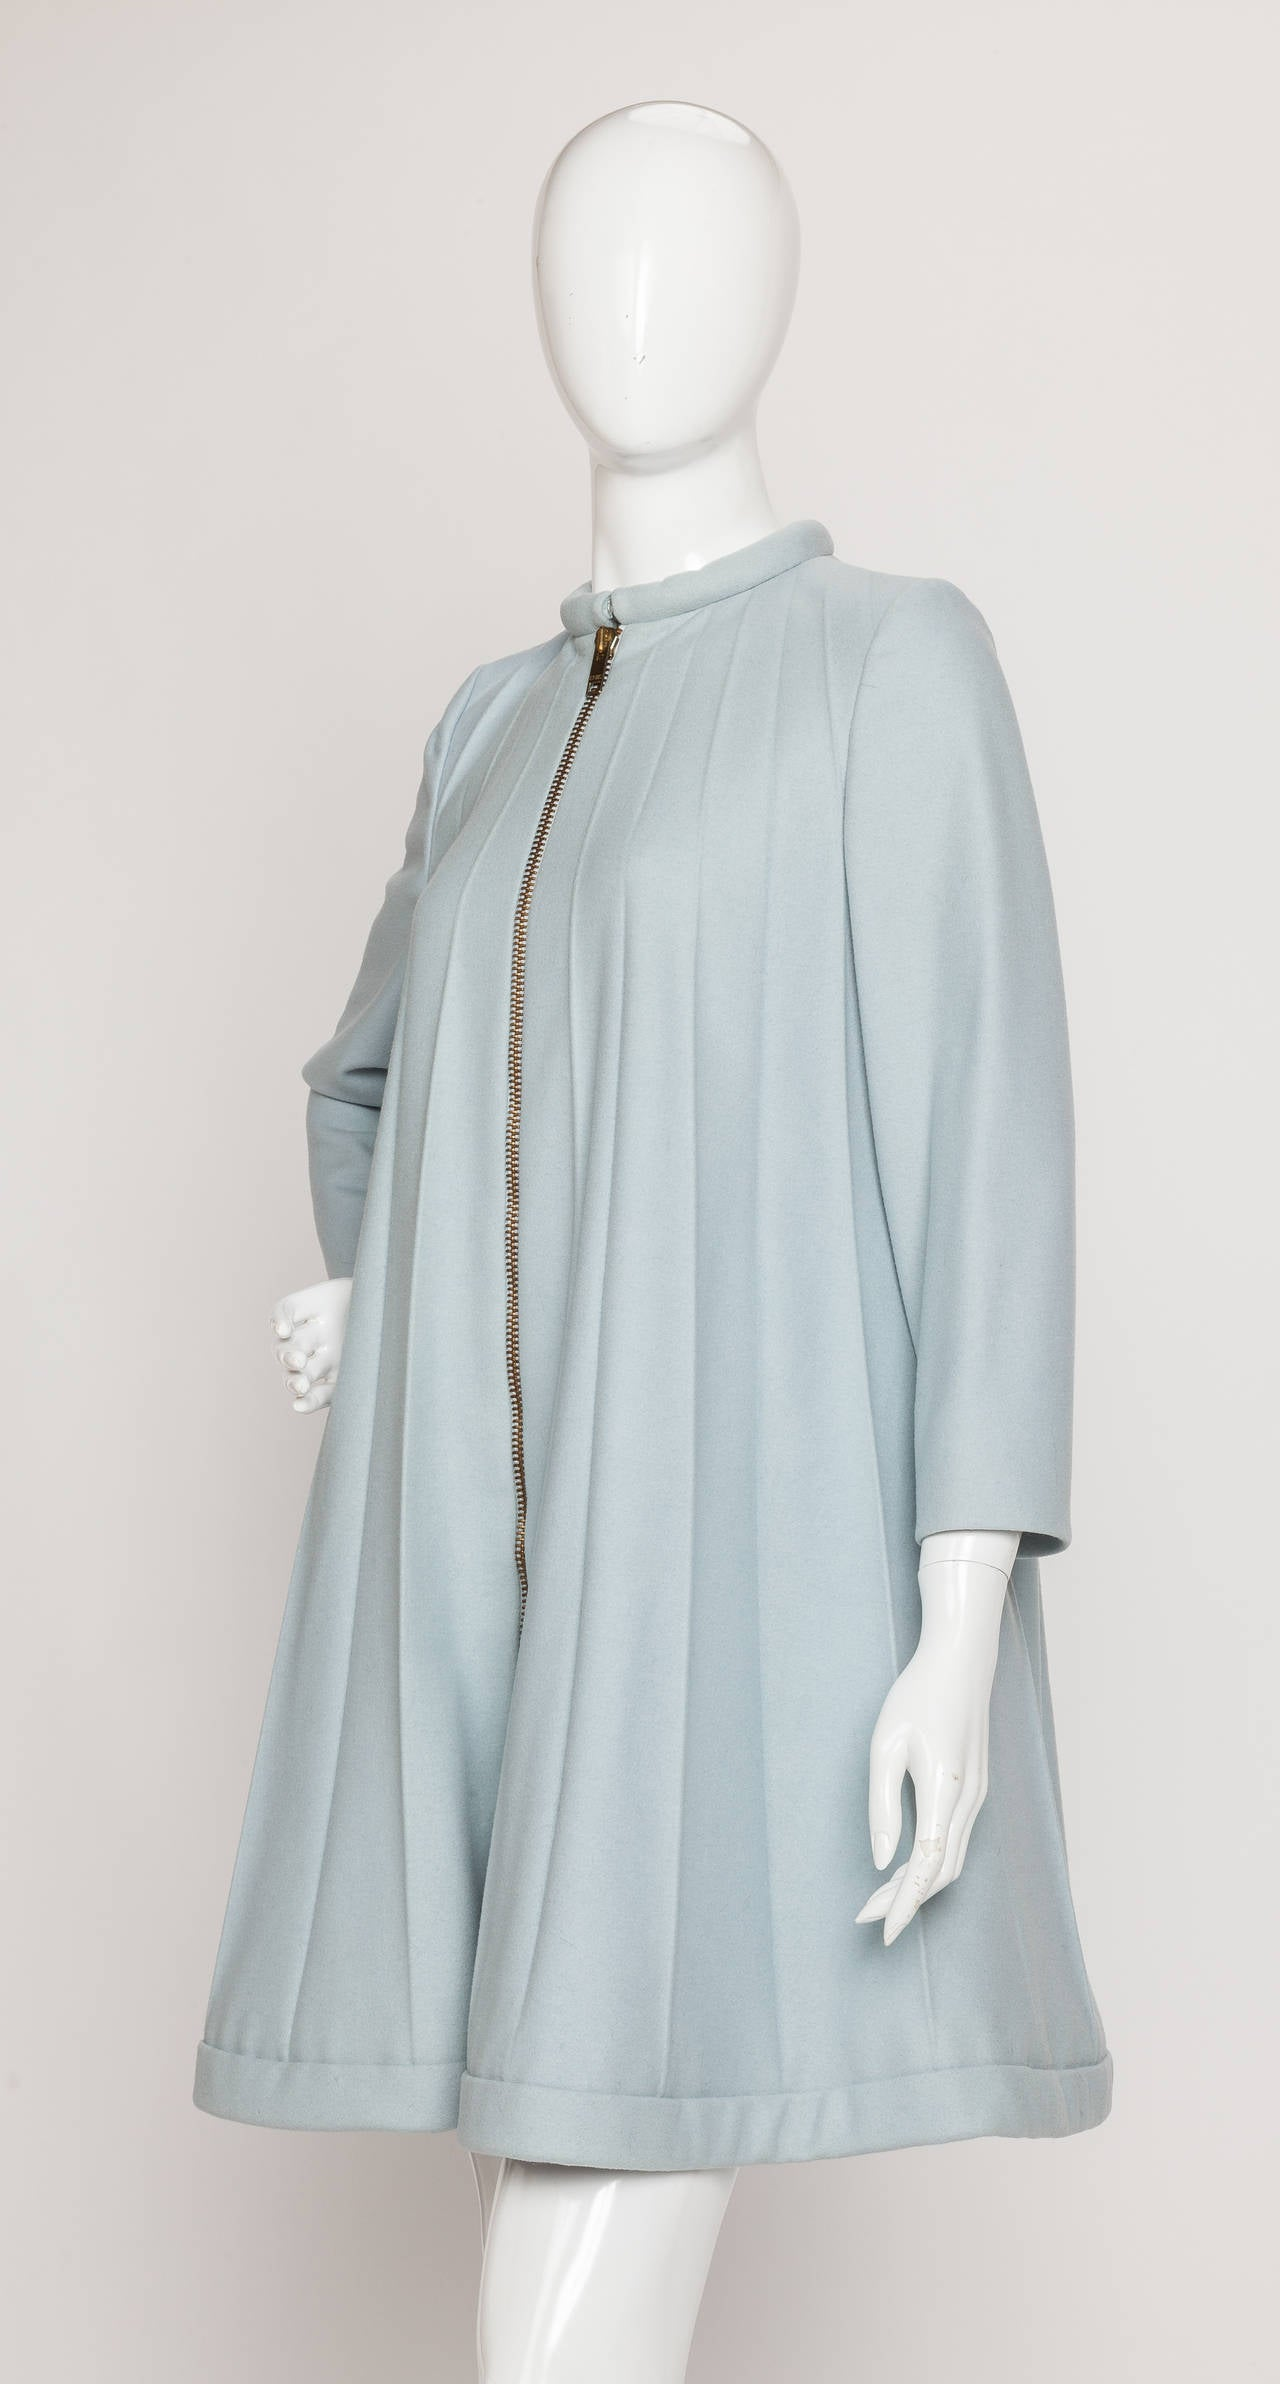 A 1967 rare Pierre Cardin pale blue melton wool coat dress with graduated accordion pleats from collar to hem. This spectacular statement piece is for the serious collector - Cardin made a similar model for Mia Farrow which she can be seen wearing